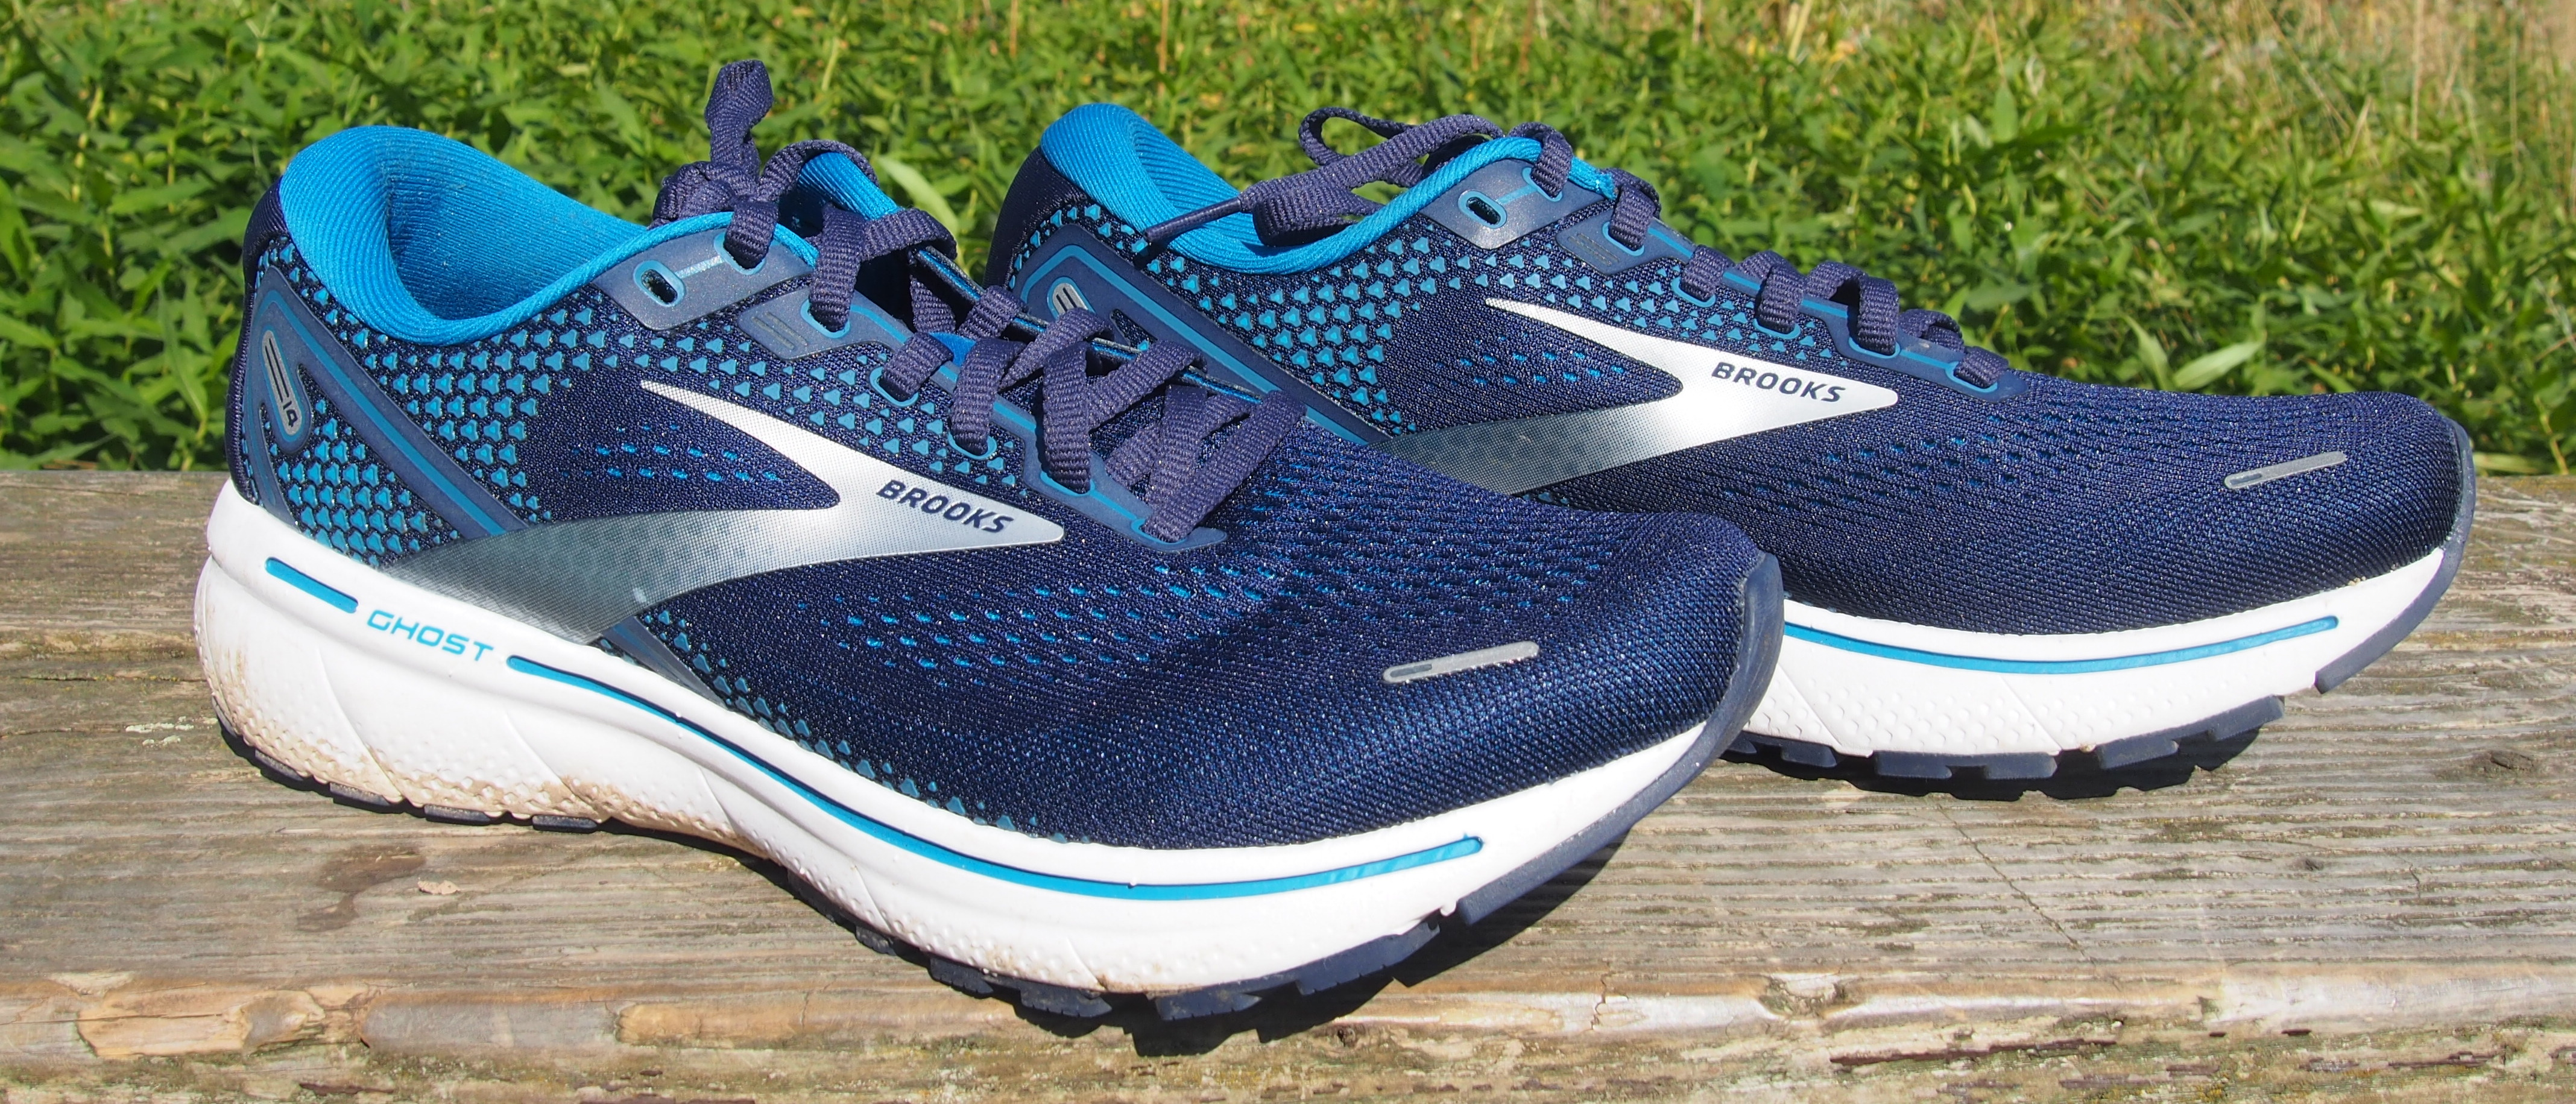 Pair of Brooks Ghost 14 running shoes, viewed from the side